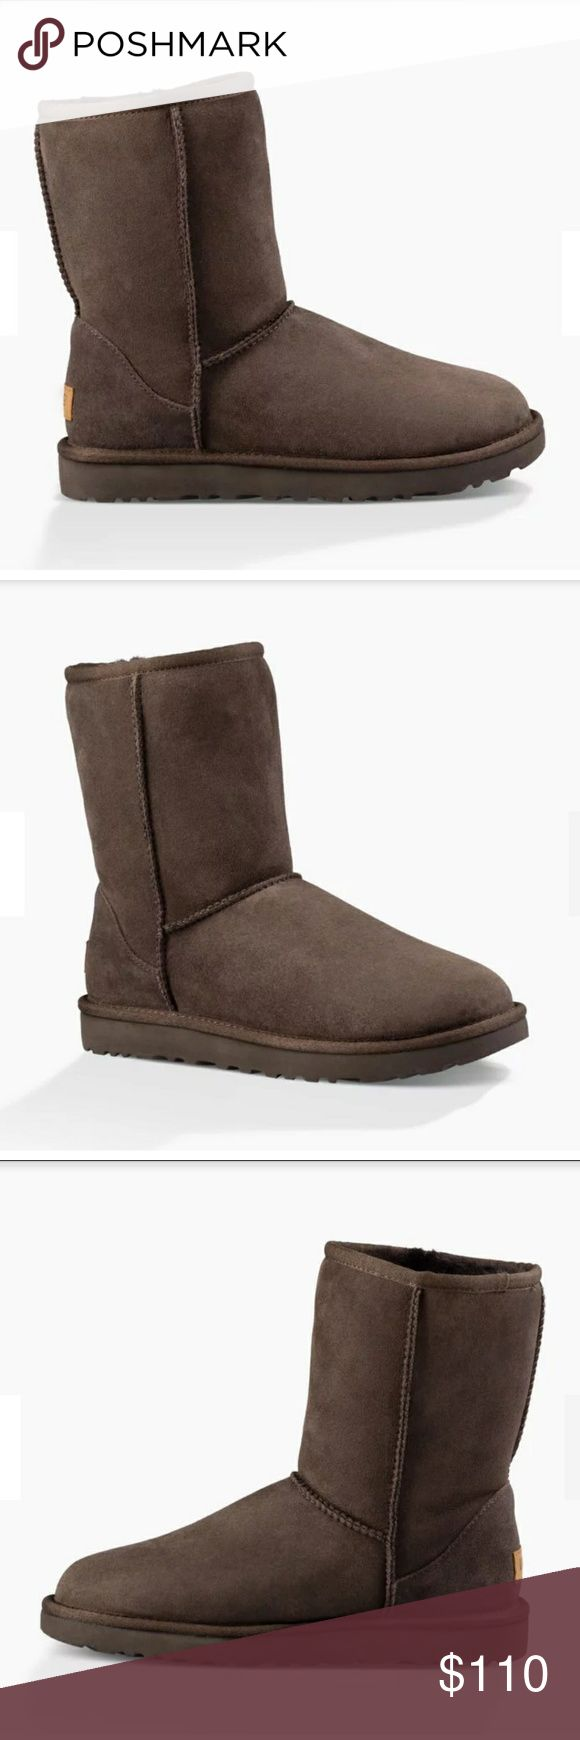 """Classic UGG short chocolate boots New, never worn """"Classic 2 Short Boots"""" in the color """"Chocolate"""". Real UGGs. UGG Shoes"""